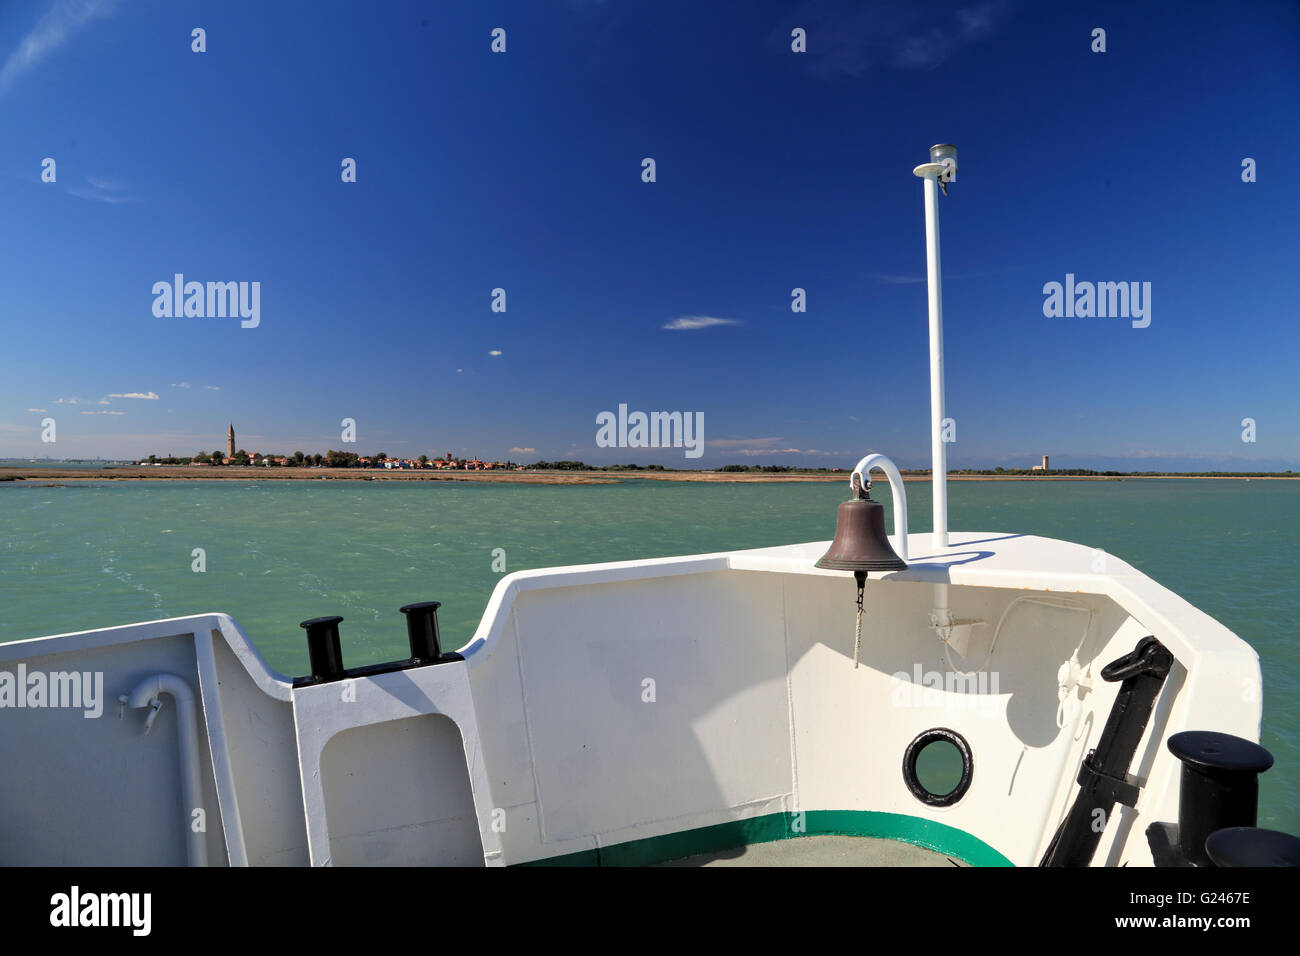 Vaporetto boat tour into the Venetian Lagoon, view to Isola di Burano Island - Stock Image